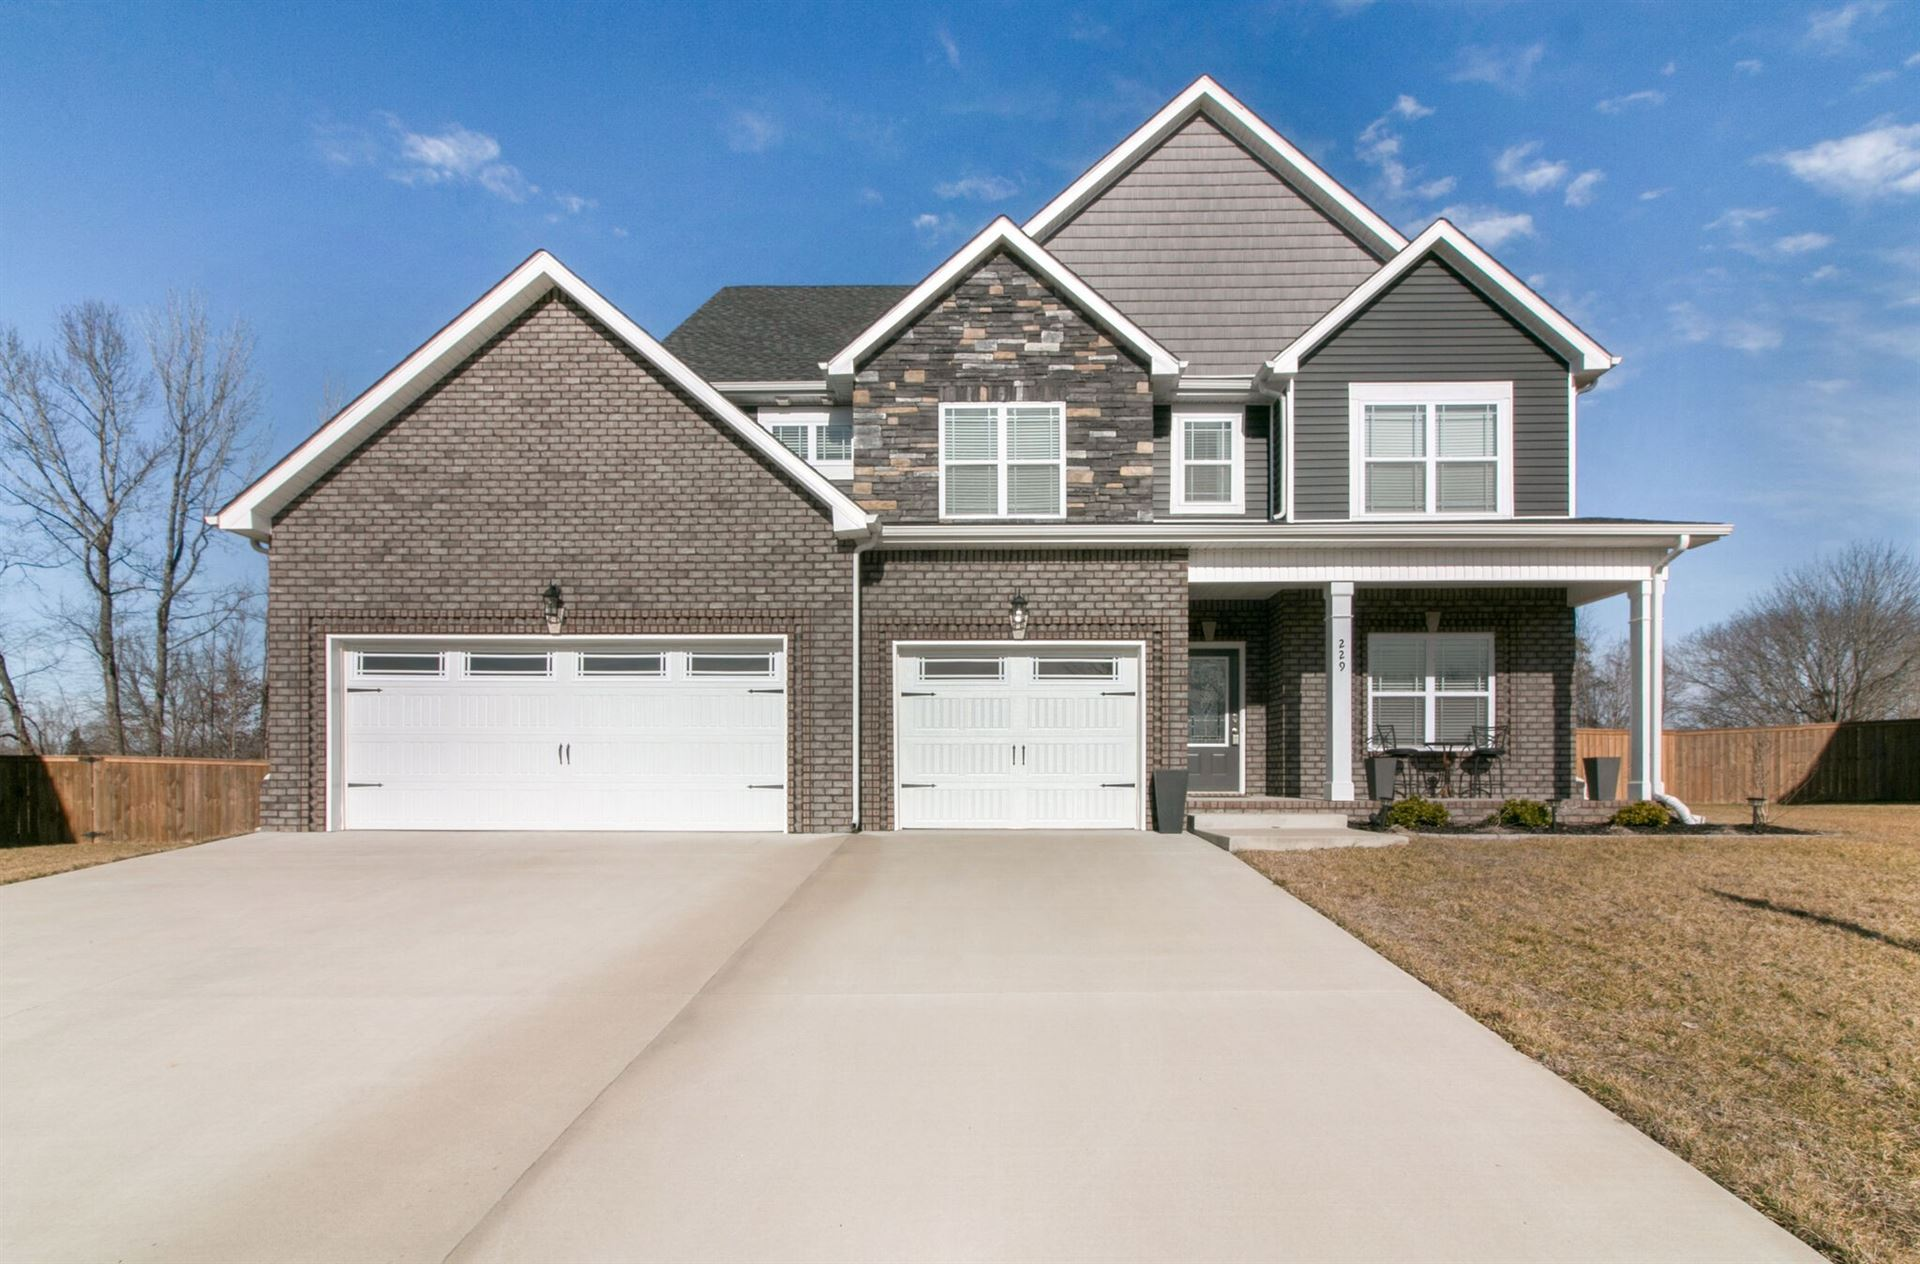 229 Ledina Ct, Clarksville, TN 37043 - MLS#: 2223559